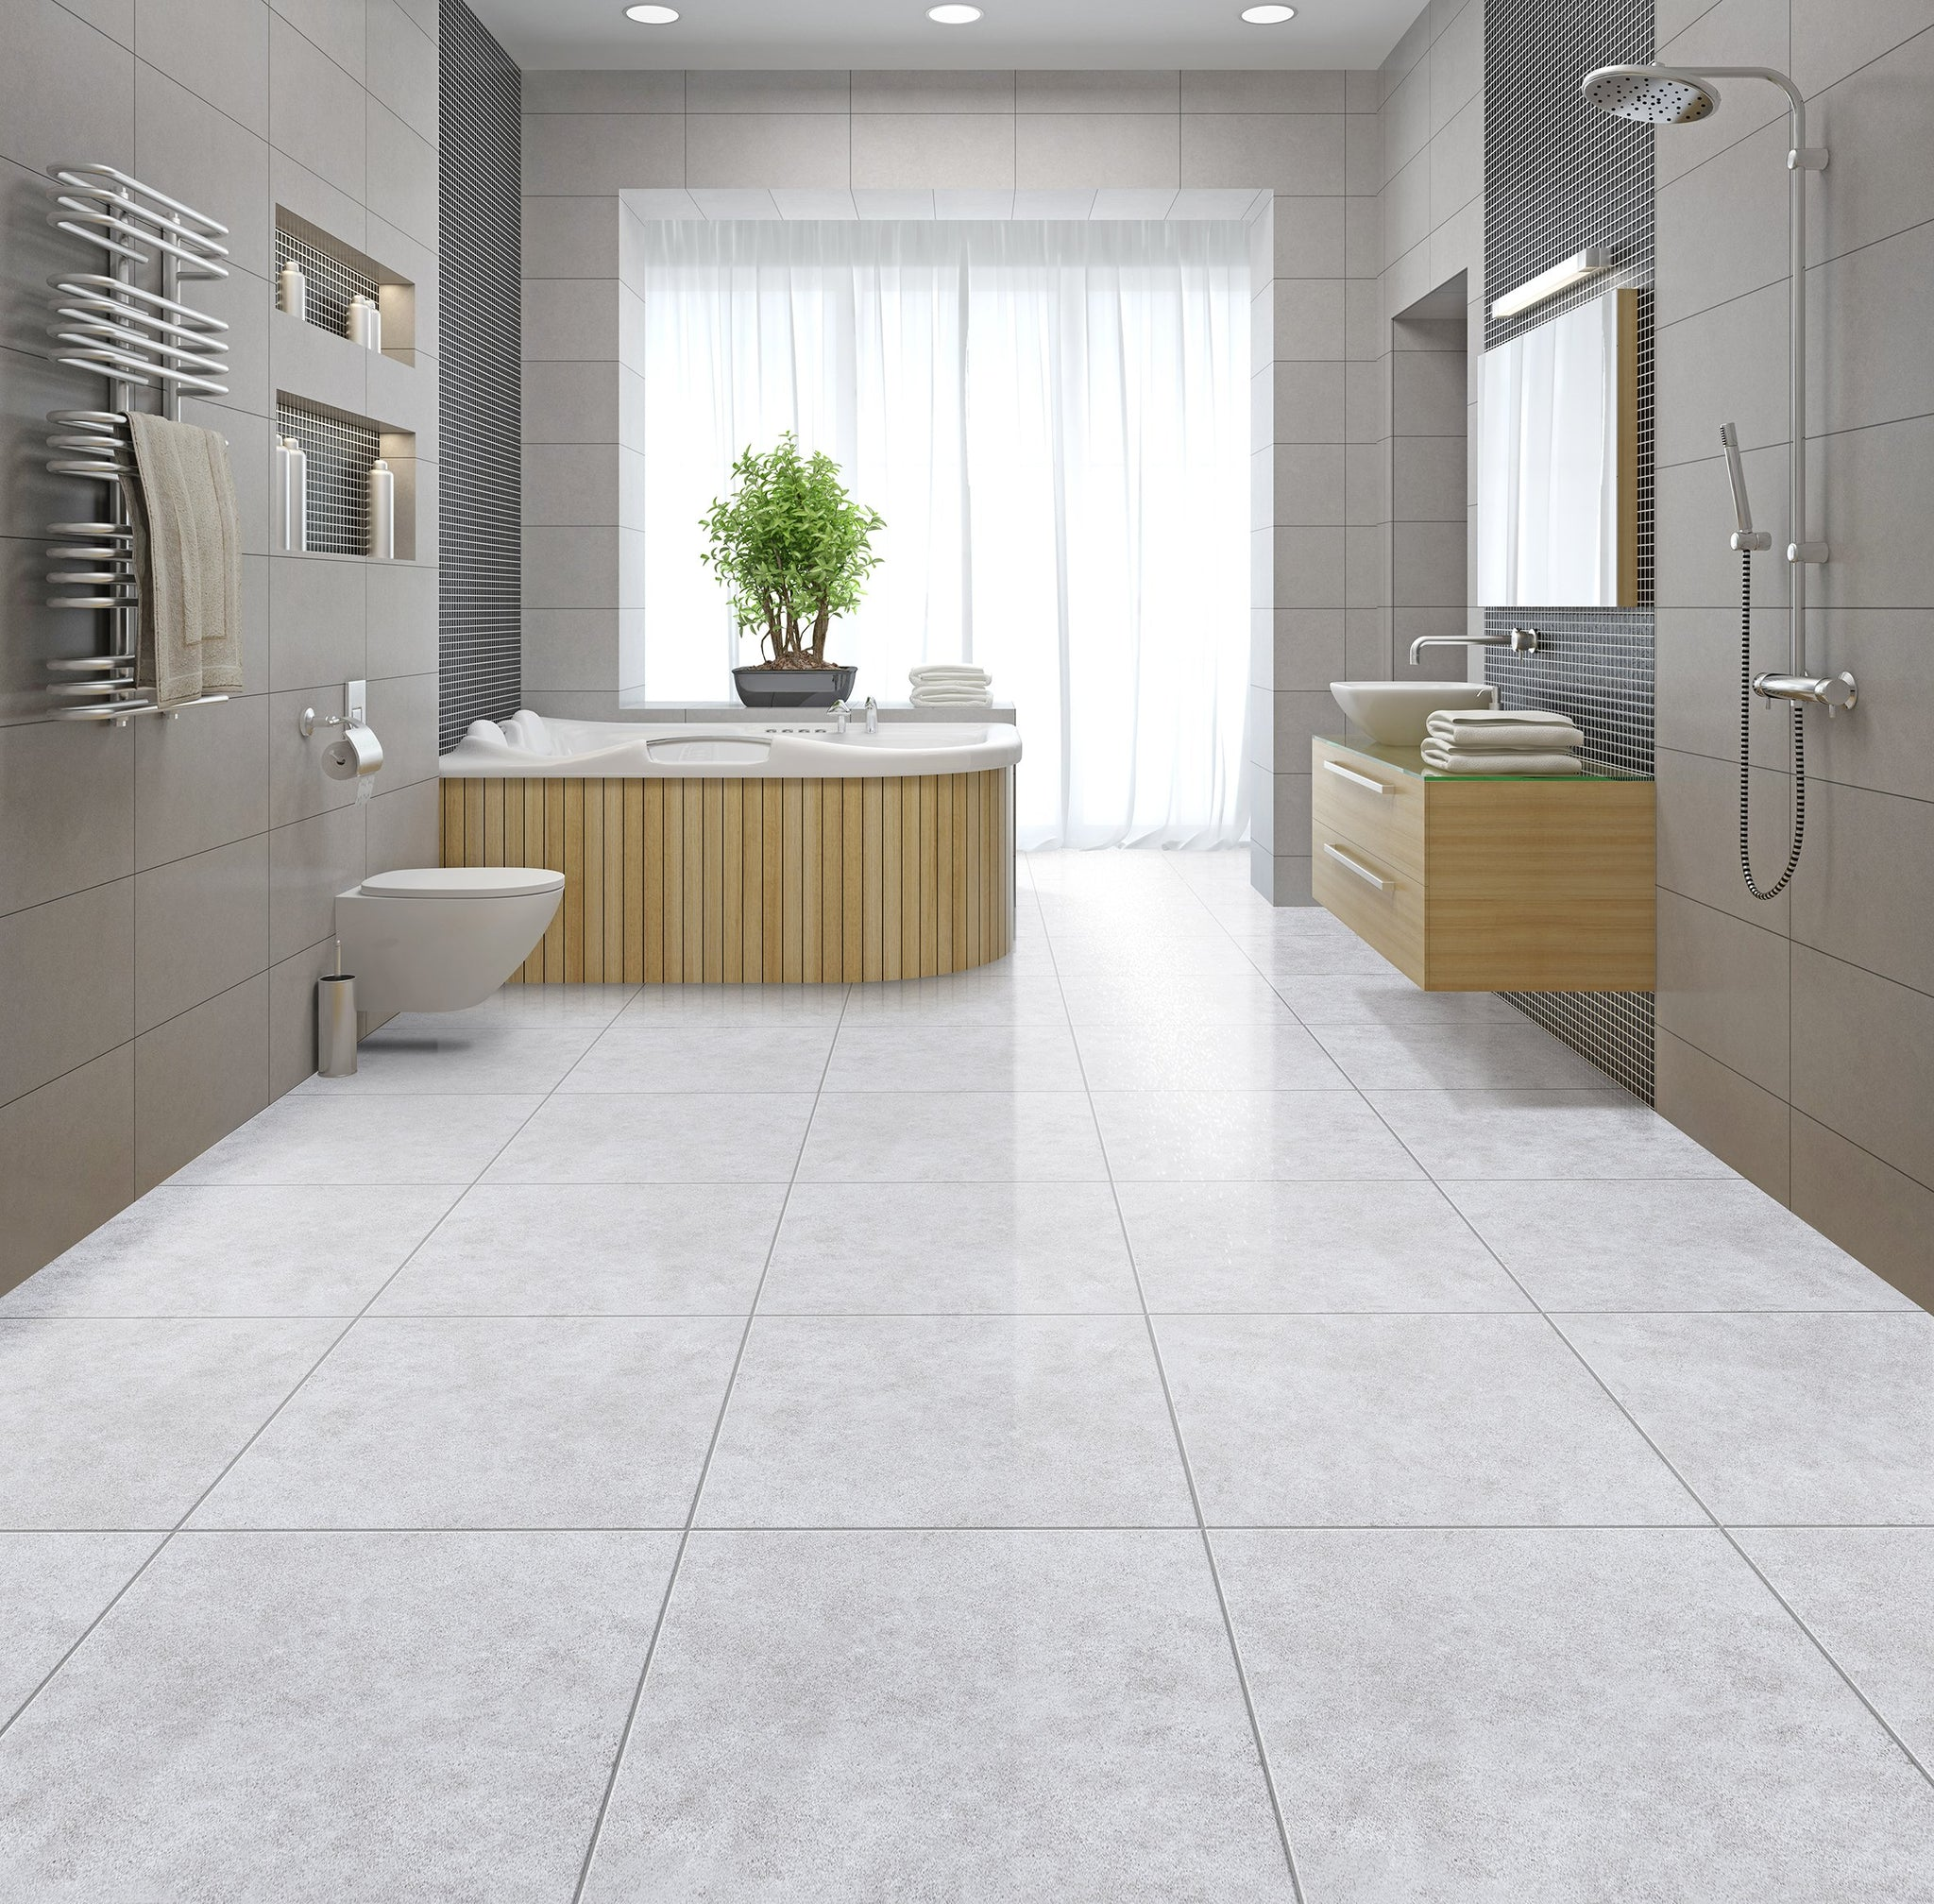 Cadiz Floor/Wall Tile